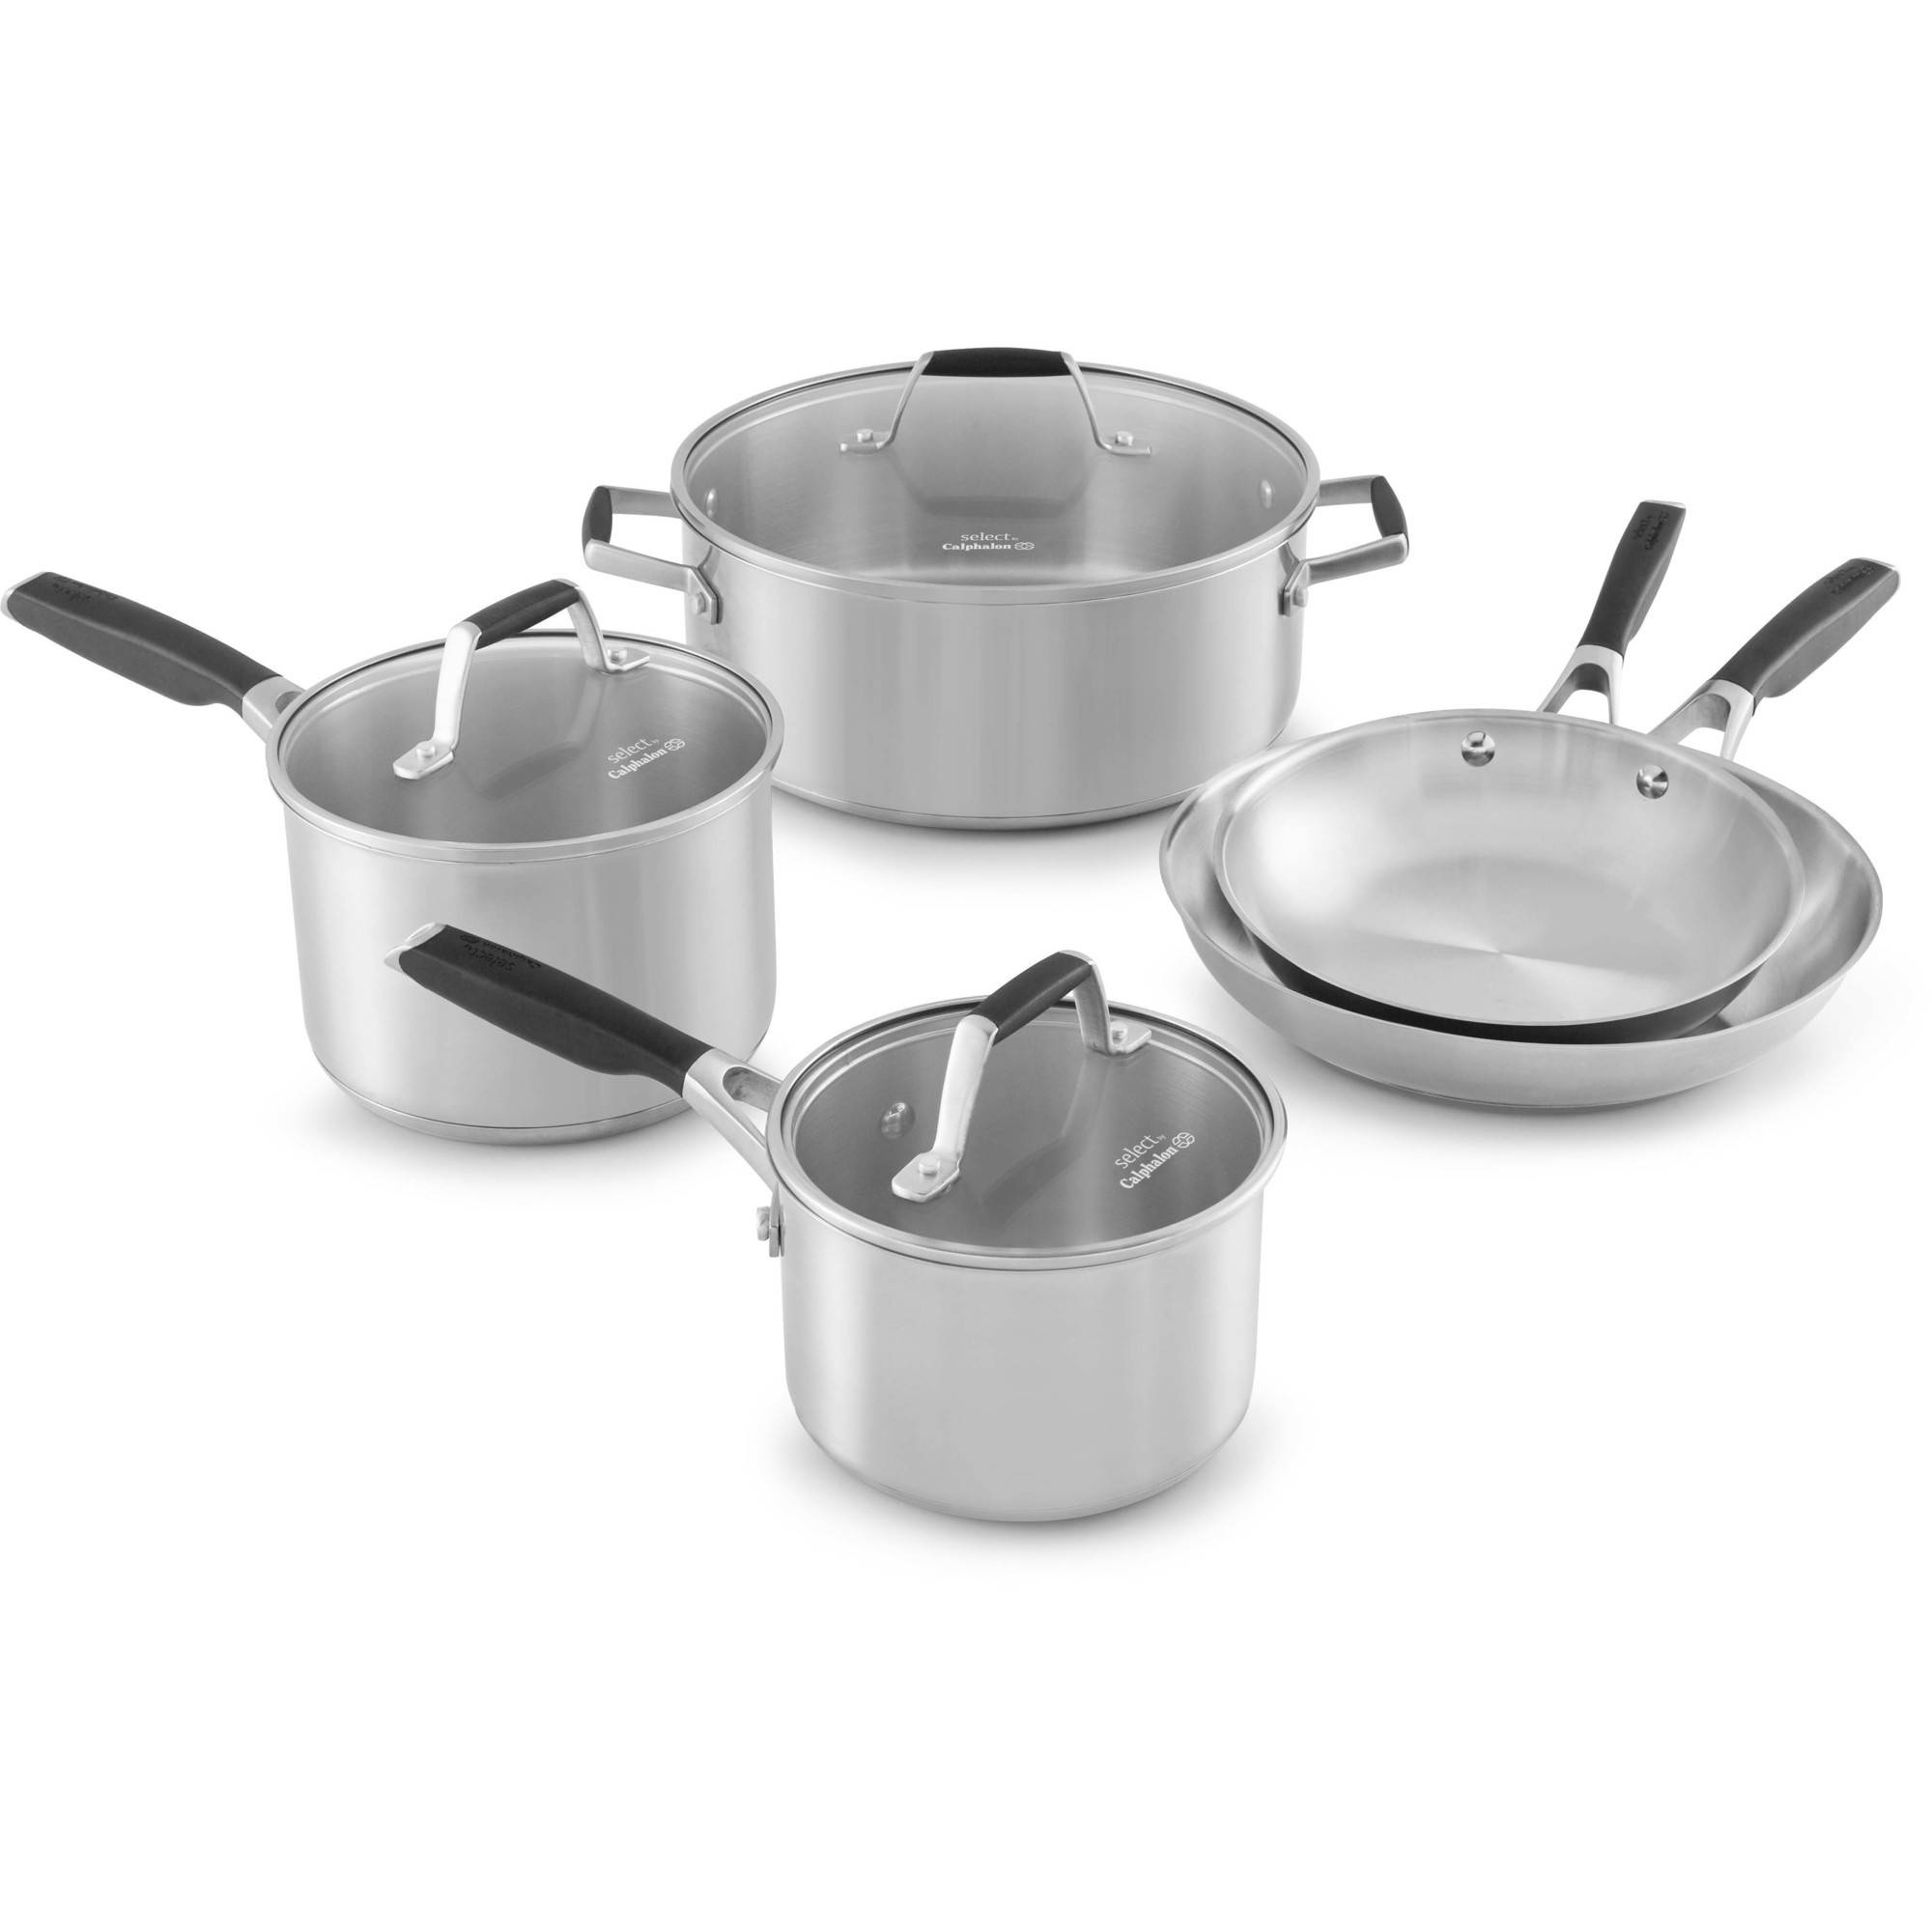 Select by Calphalon Stainless Steel 8-piece Cookware Set by